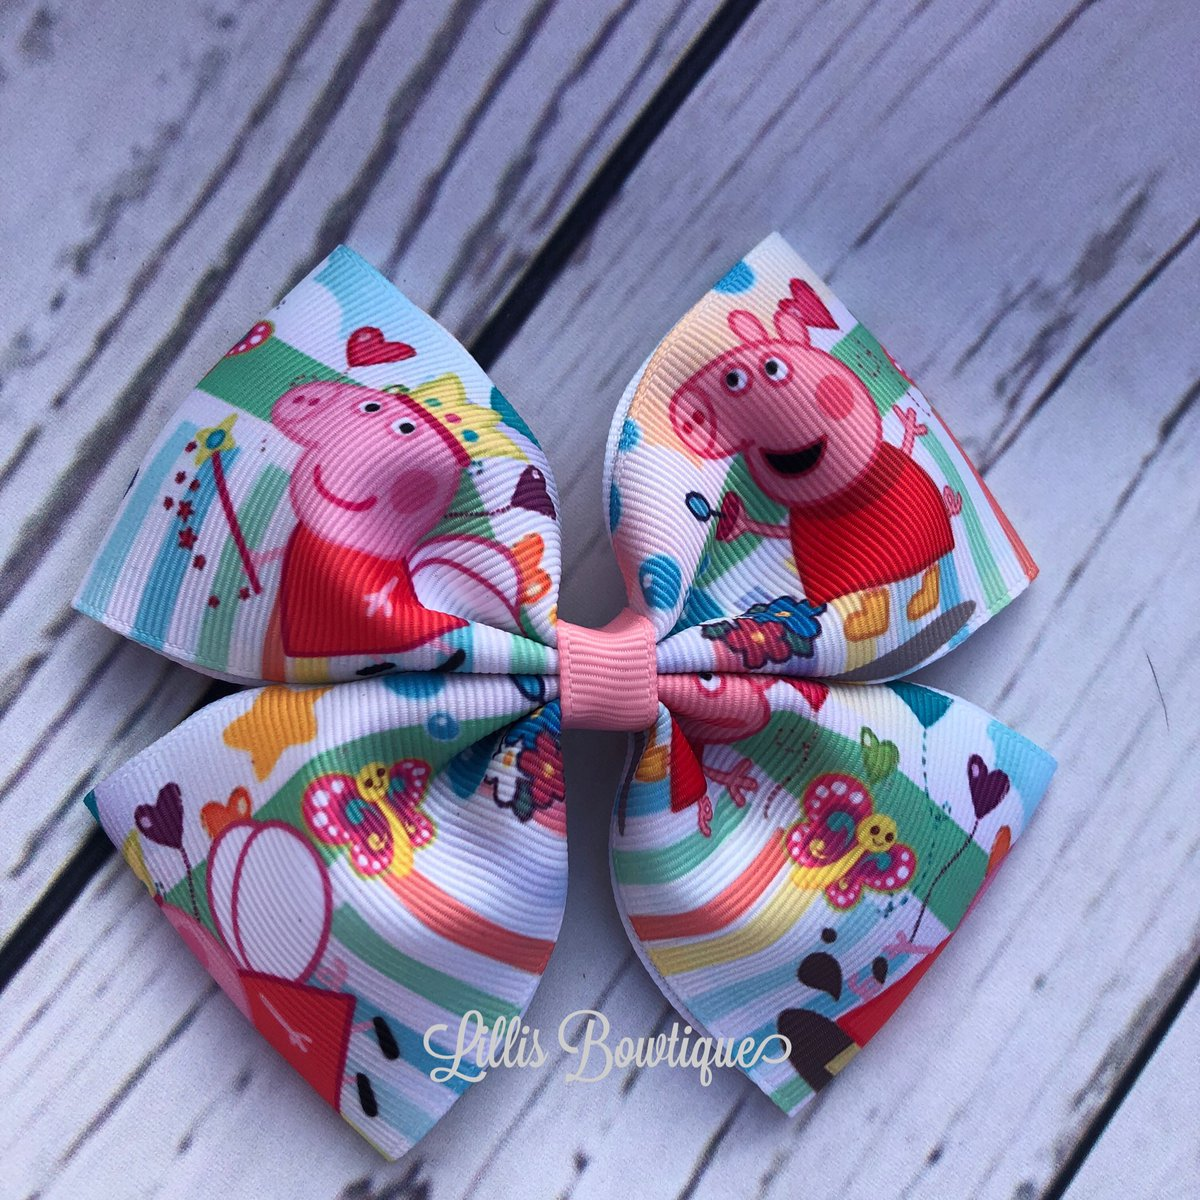 Last one in our cute peppa pig bow ready to post now on the website #springhairbows #bowsbowsbows #peppapig #handmadehairbows #handmadebows #buyonline #bowboutique #lillisbowtique #smallbows #fringeclips #pigtailbowspic.twitter.com/ST2Tr3NbWw